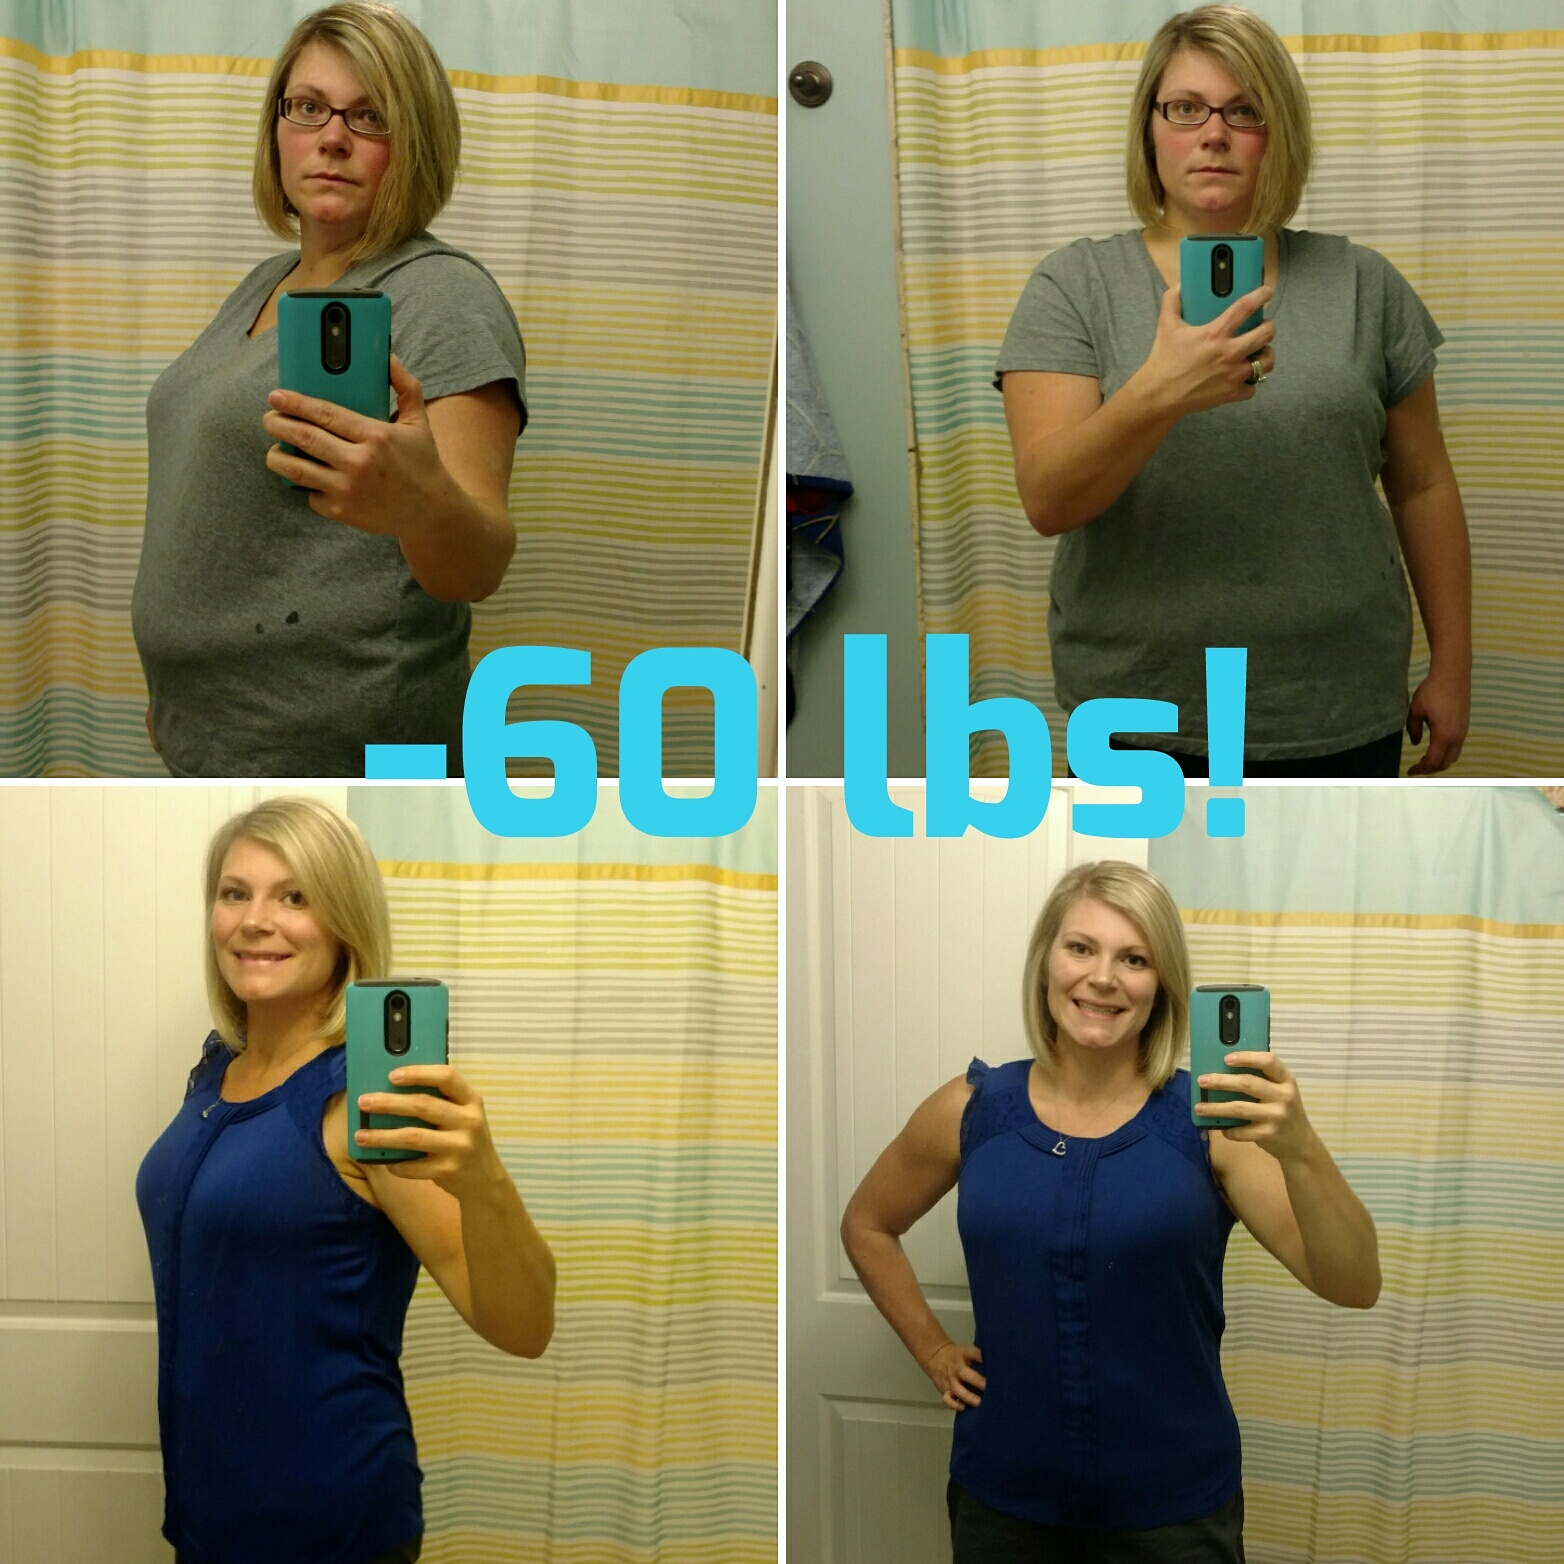 60 weight loss program